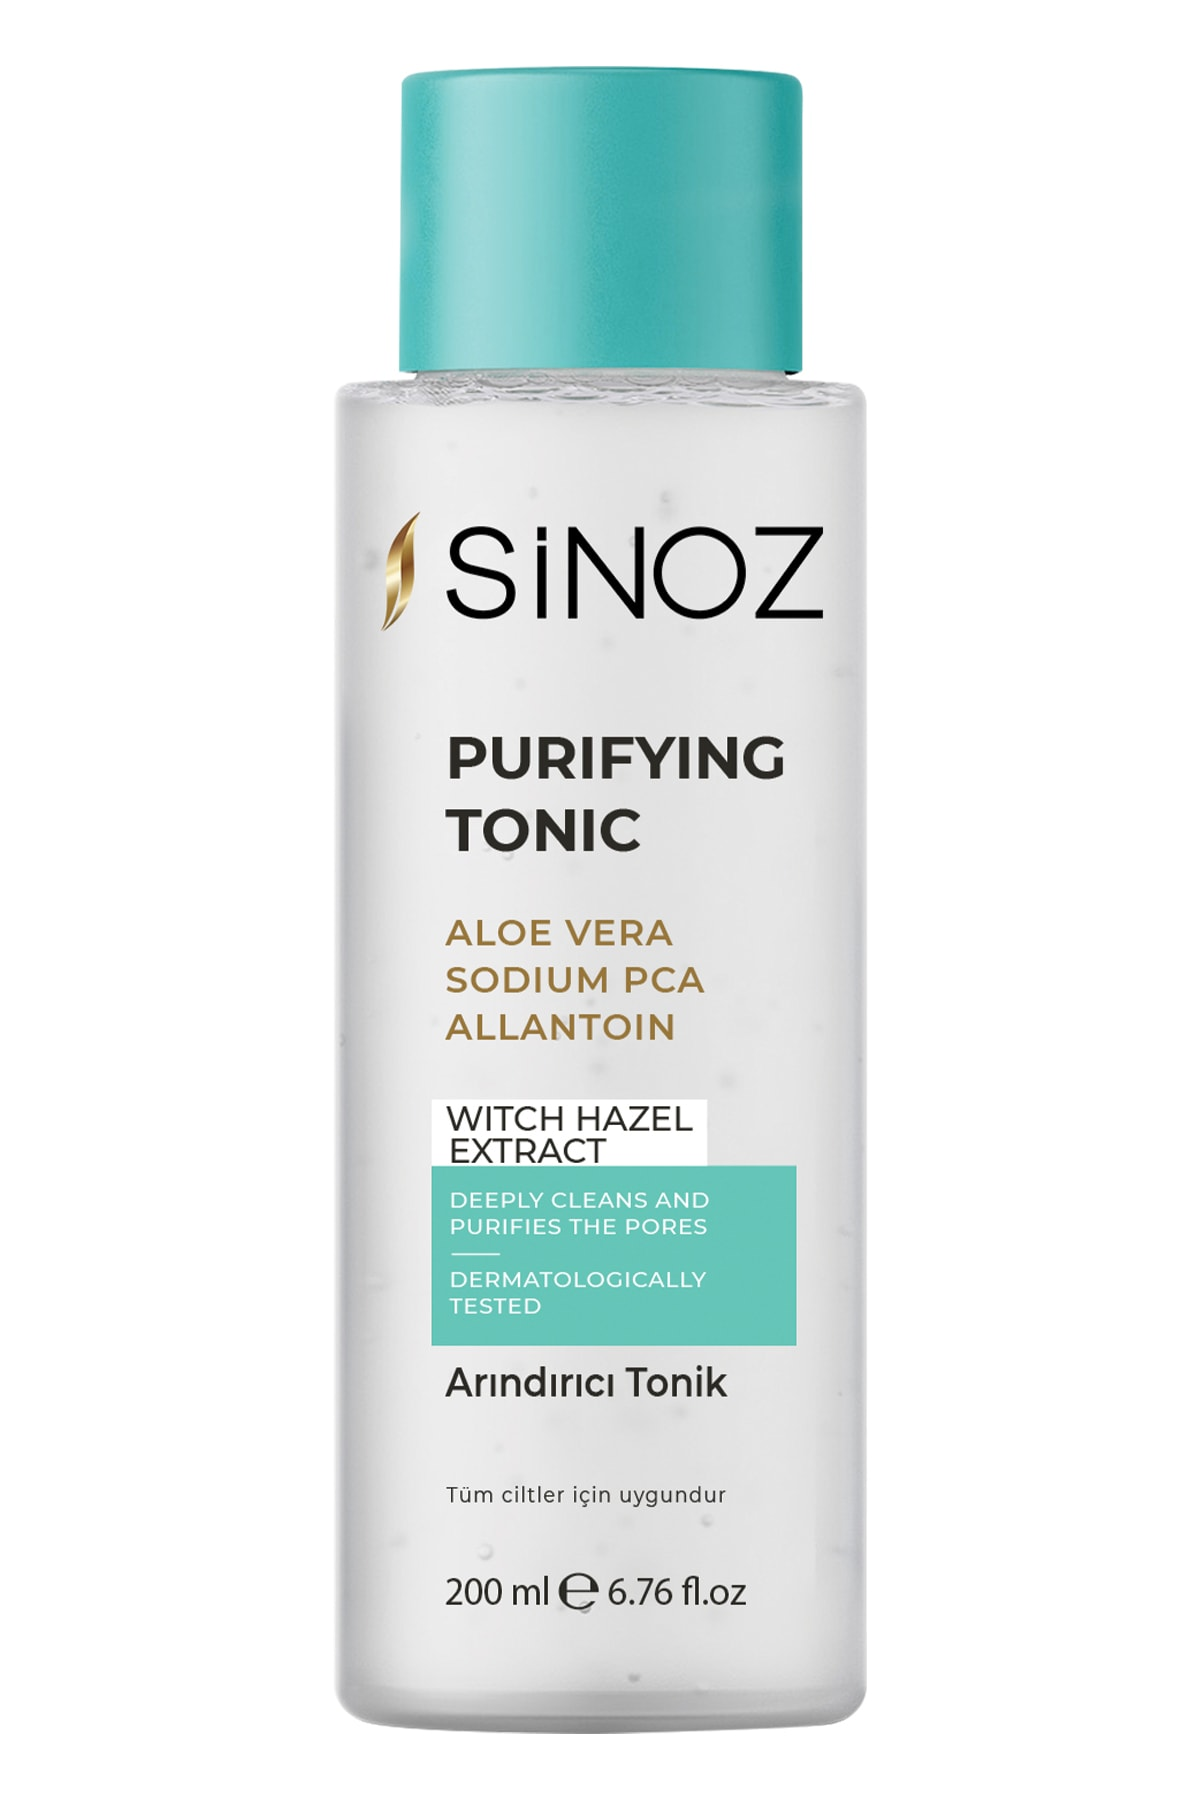 Sinoz Purifying Tonic, with aloe vera and witch hazel herbal formula, cleans the pores deeply 200 ml